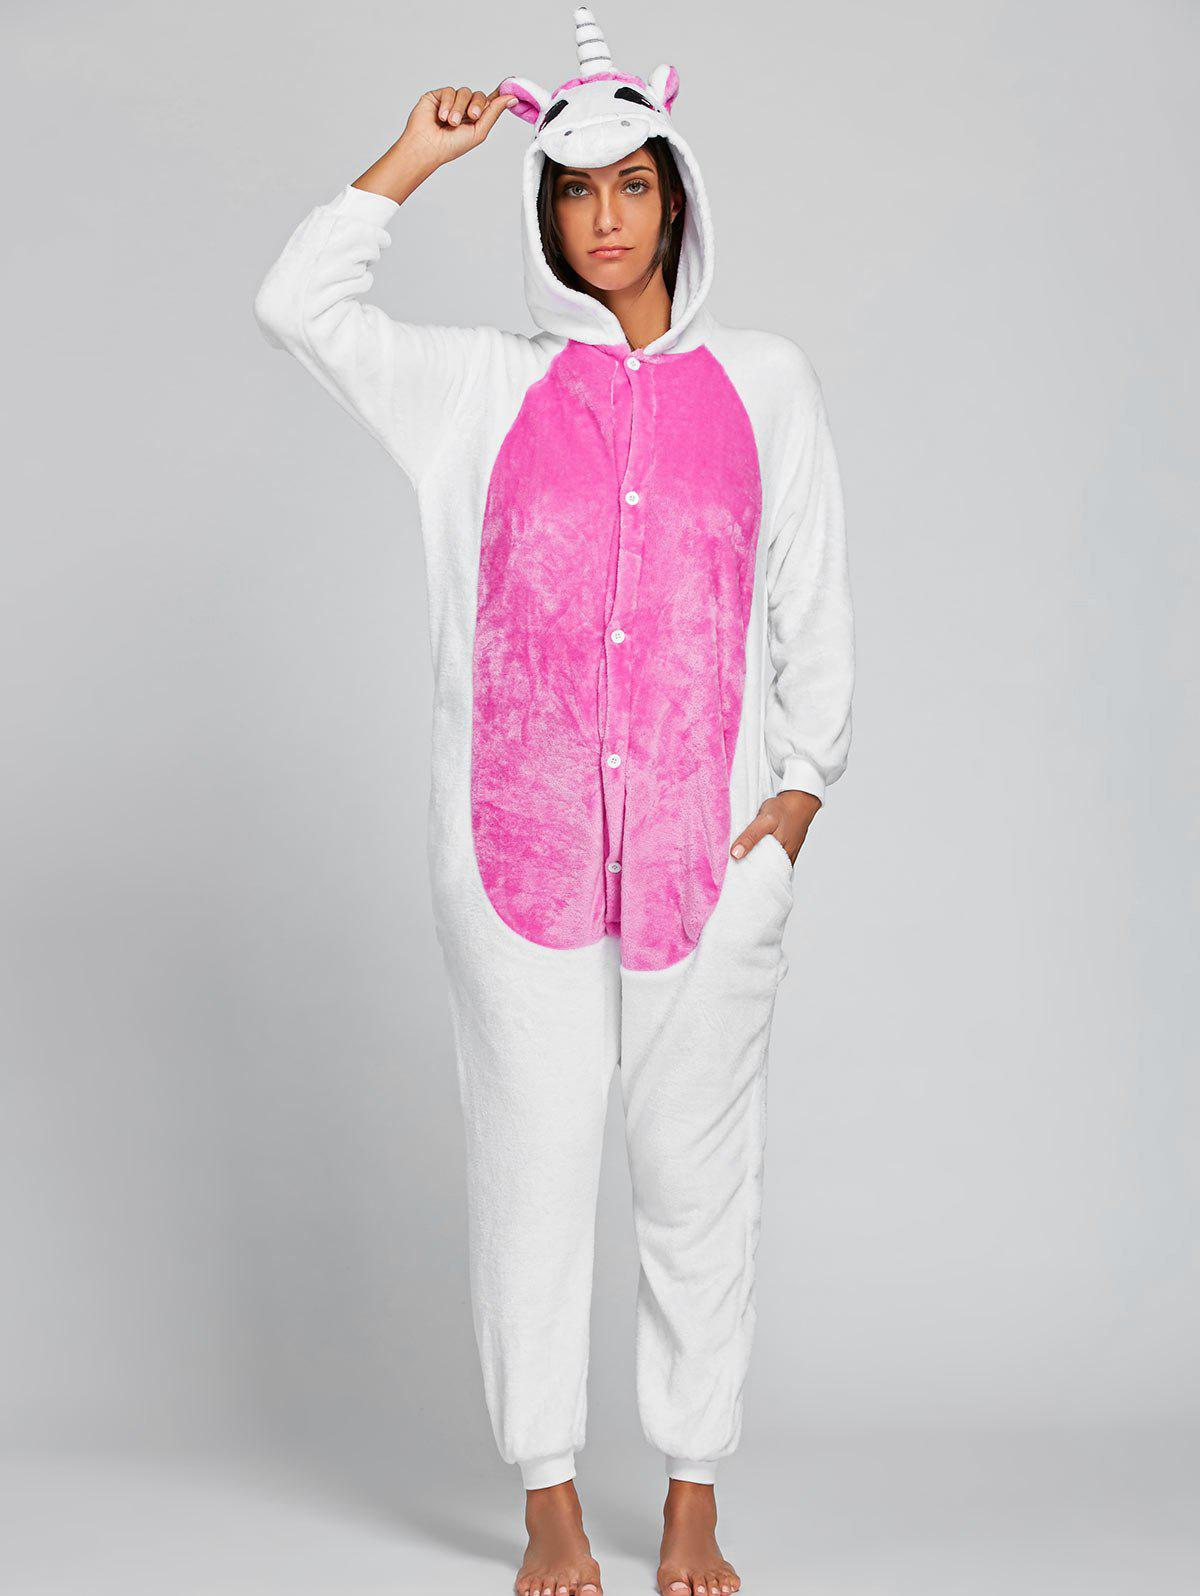 2018 Nice Unicorn Animal Onesie Pajama for Adult PINK S In ...